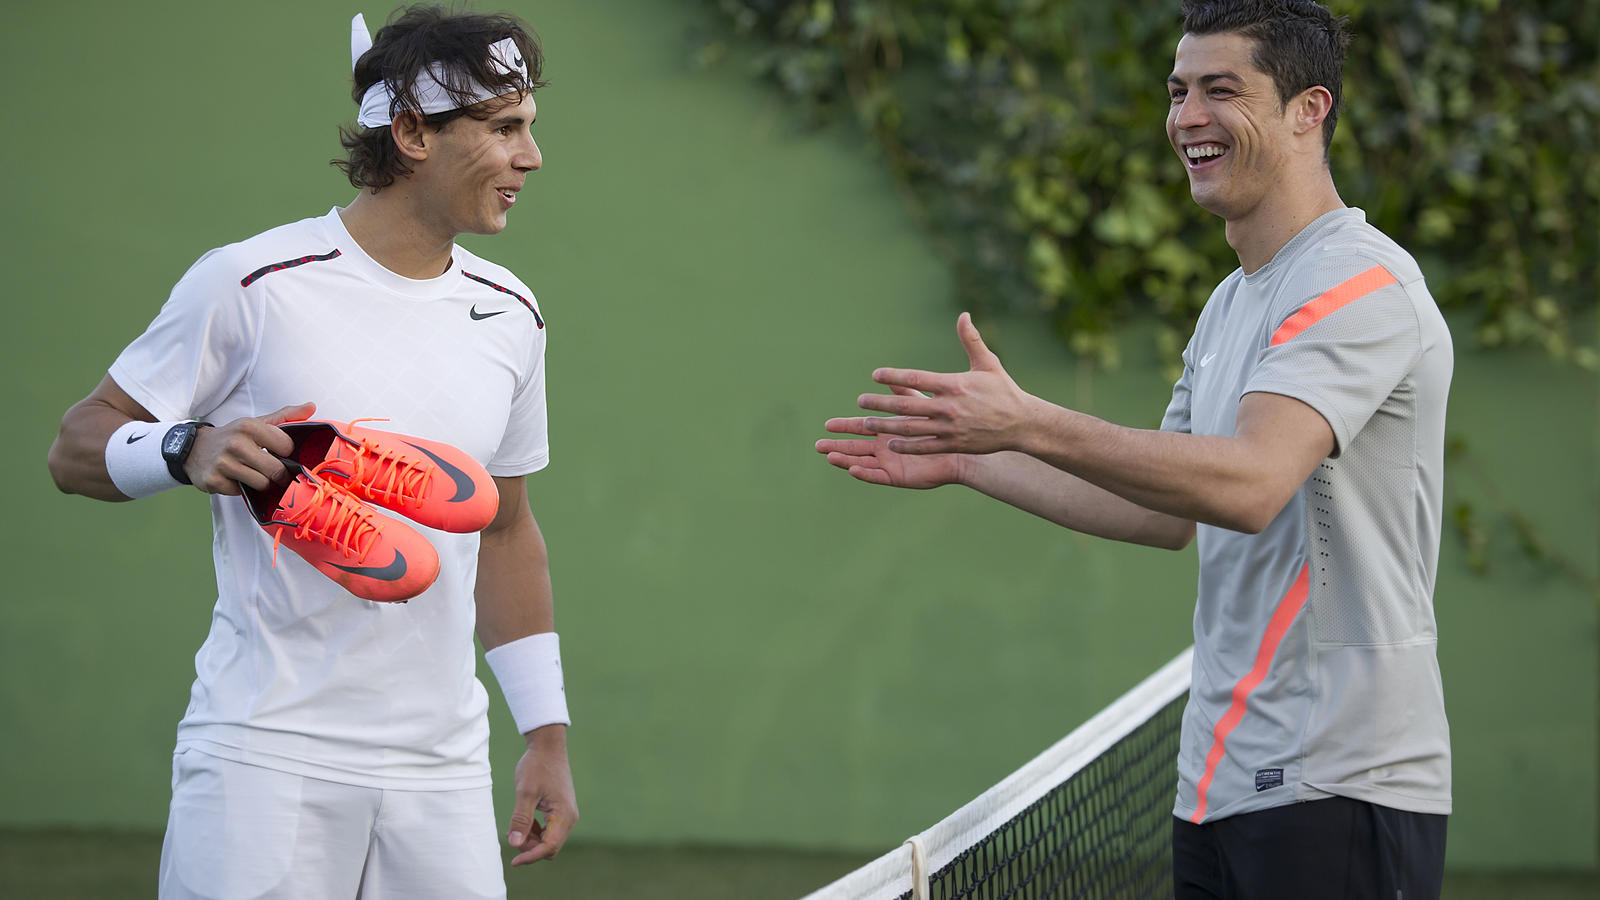 Cristiano Ronaldo Faces Off Against Rafael Nadal In New Film From Nike Football Nike News